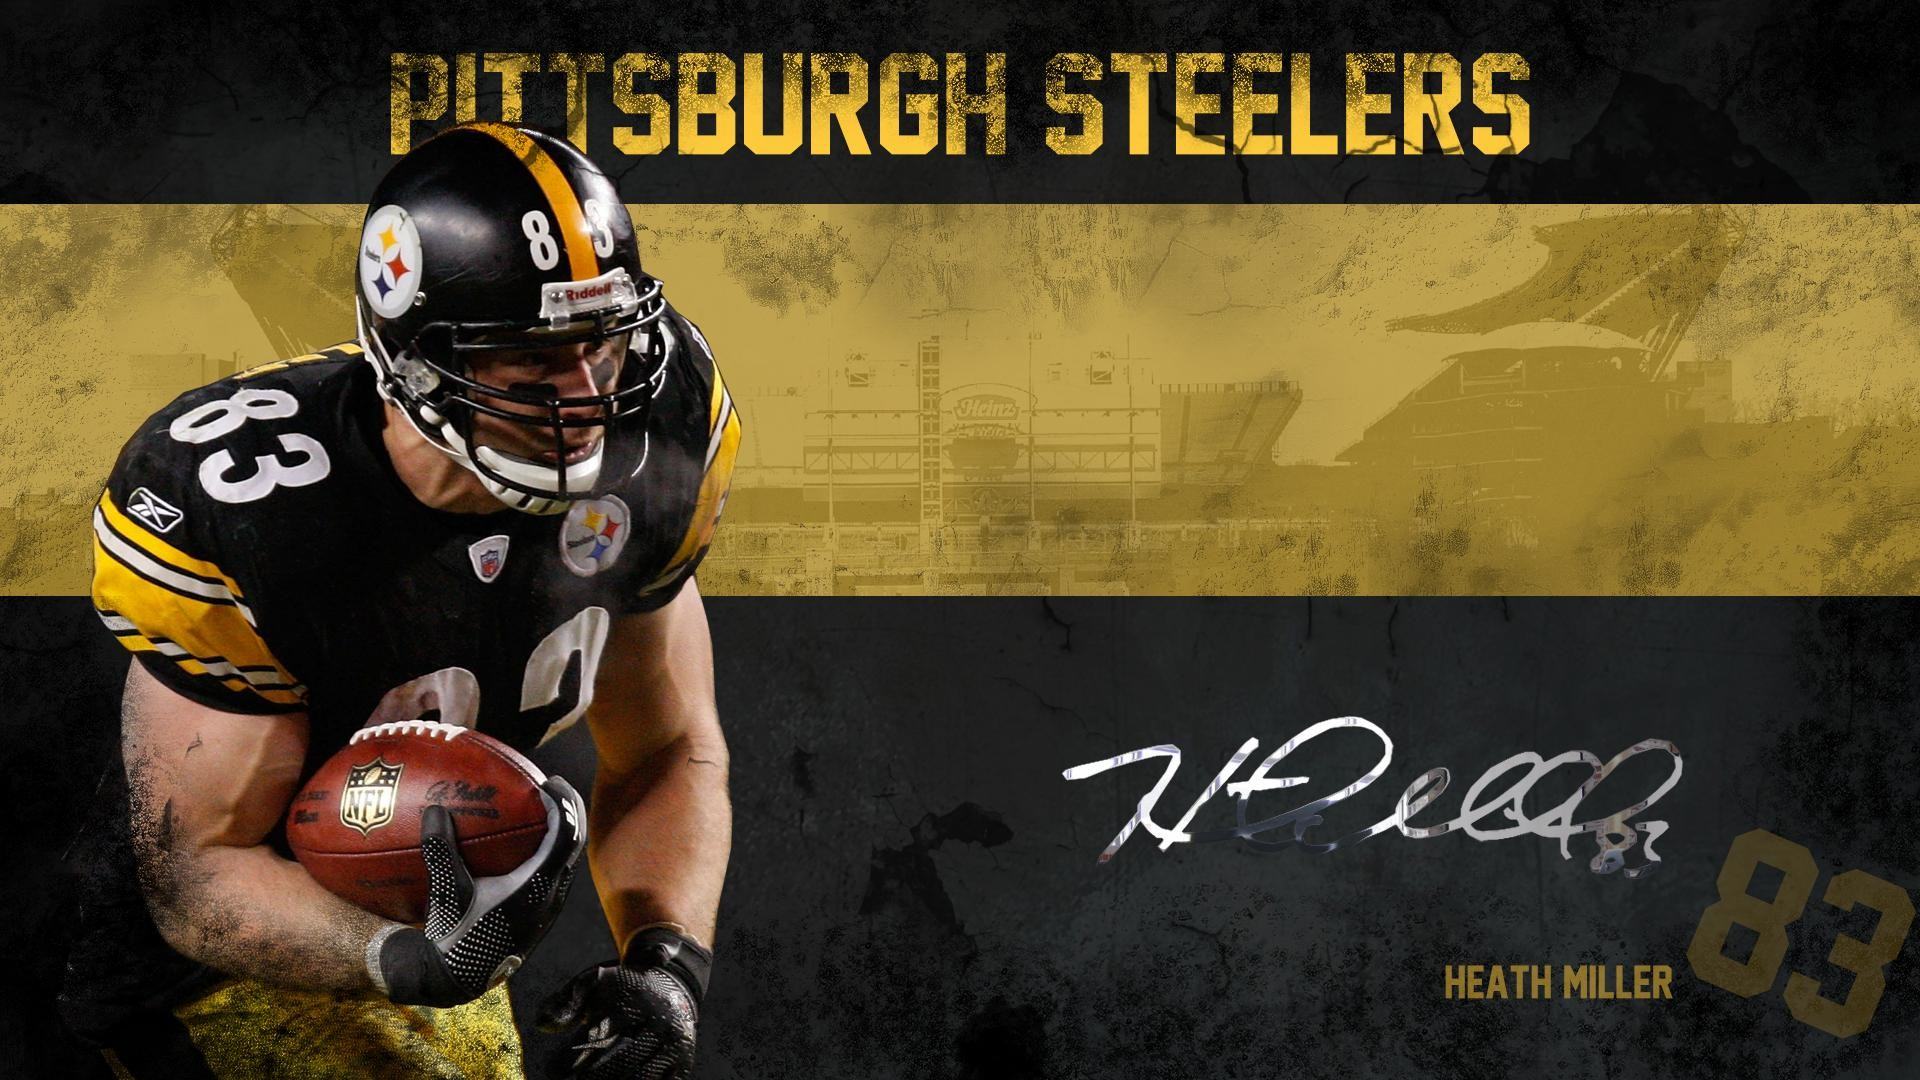 Res: 1920x1080, pittsburgh steelers wallpaper #259612